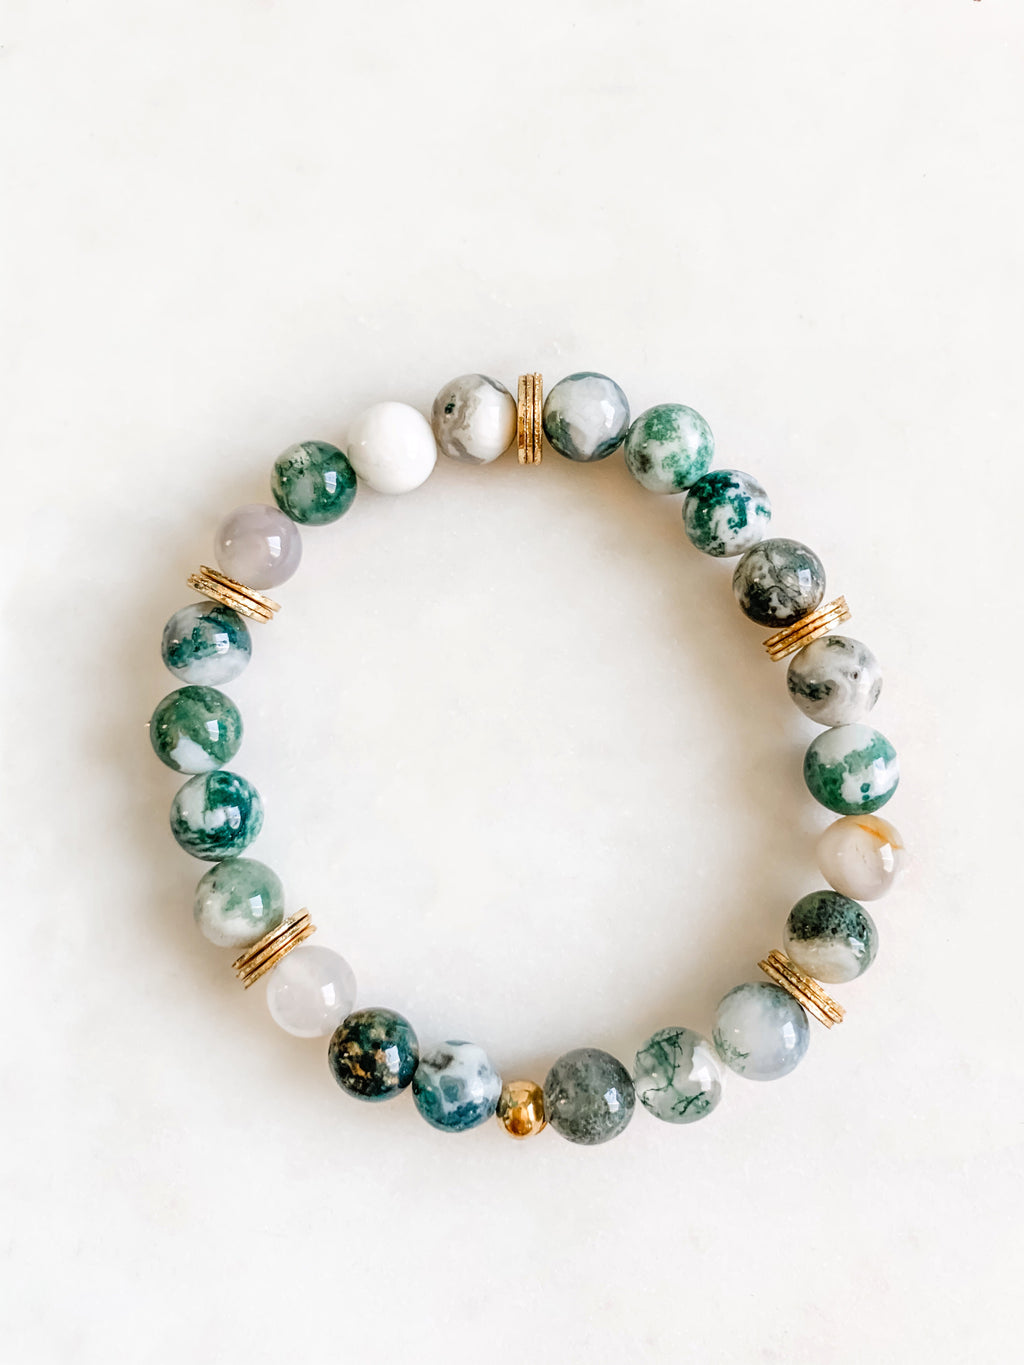 Evergreen Dream Bracelet